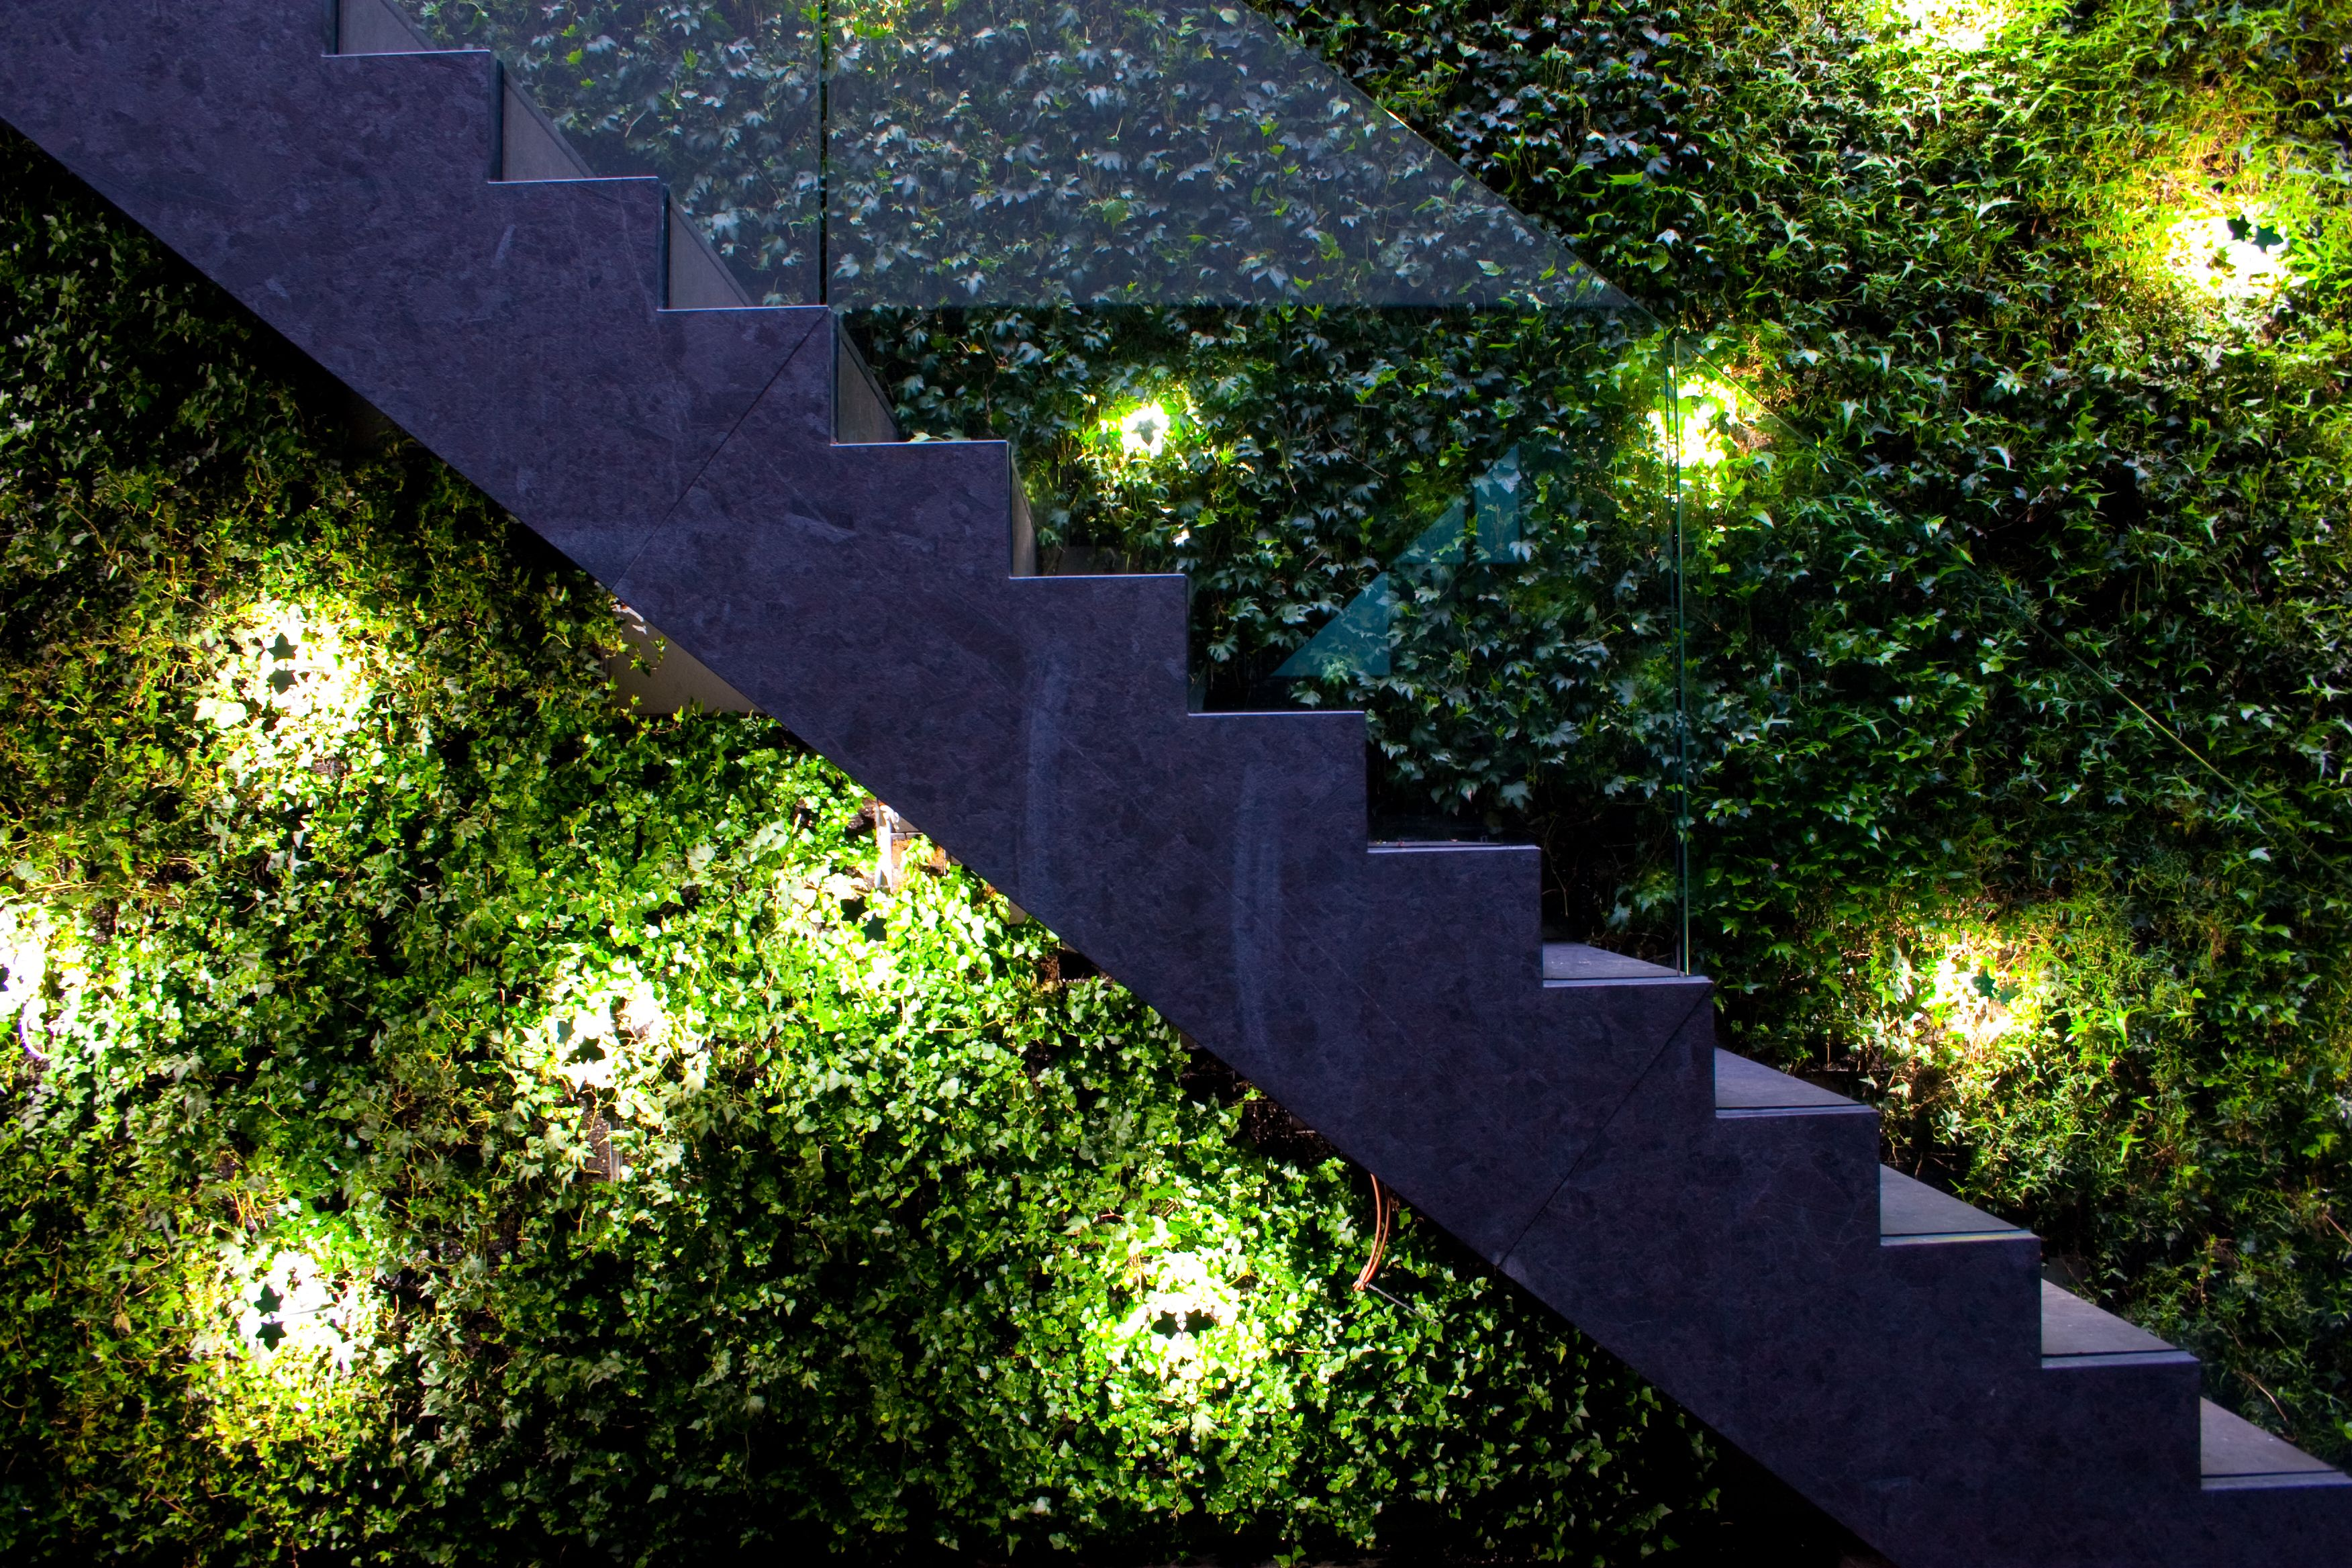 Bowles and Wyer, stairs, green wall, garden lighting